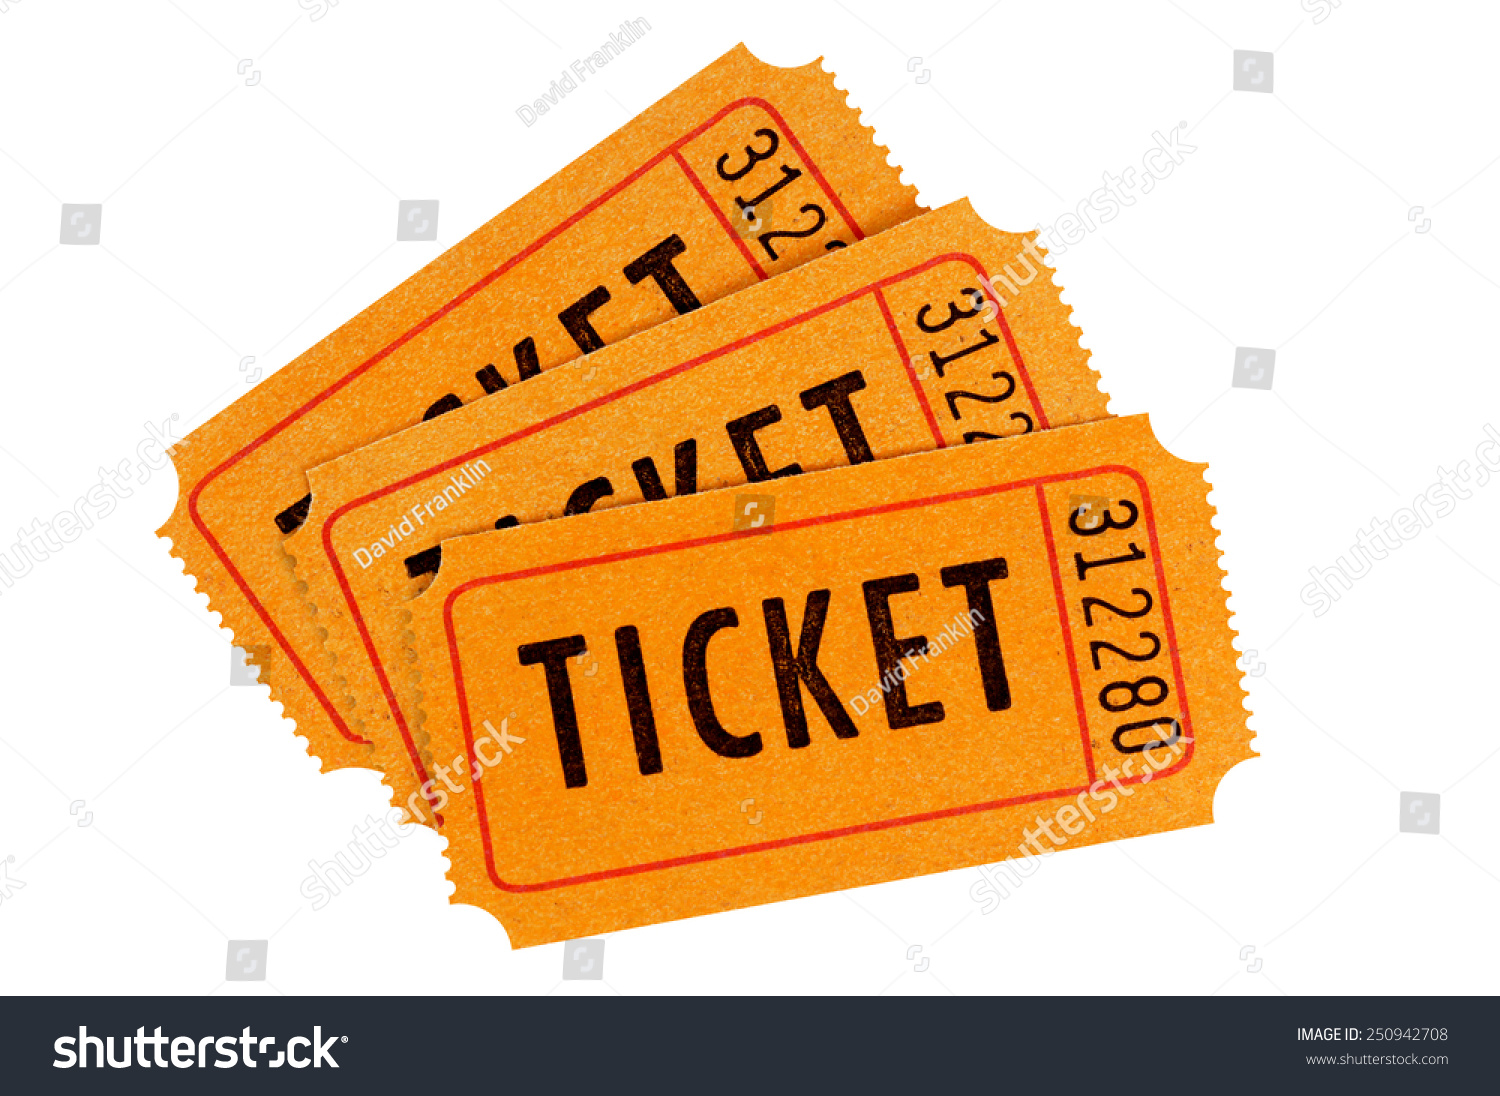 raffle ticket group three orange movie stock photo 250942708 raffle ticket group of three orange movie or concert tickets isolated on a white background